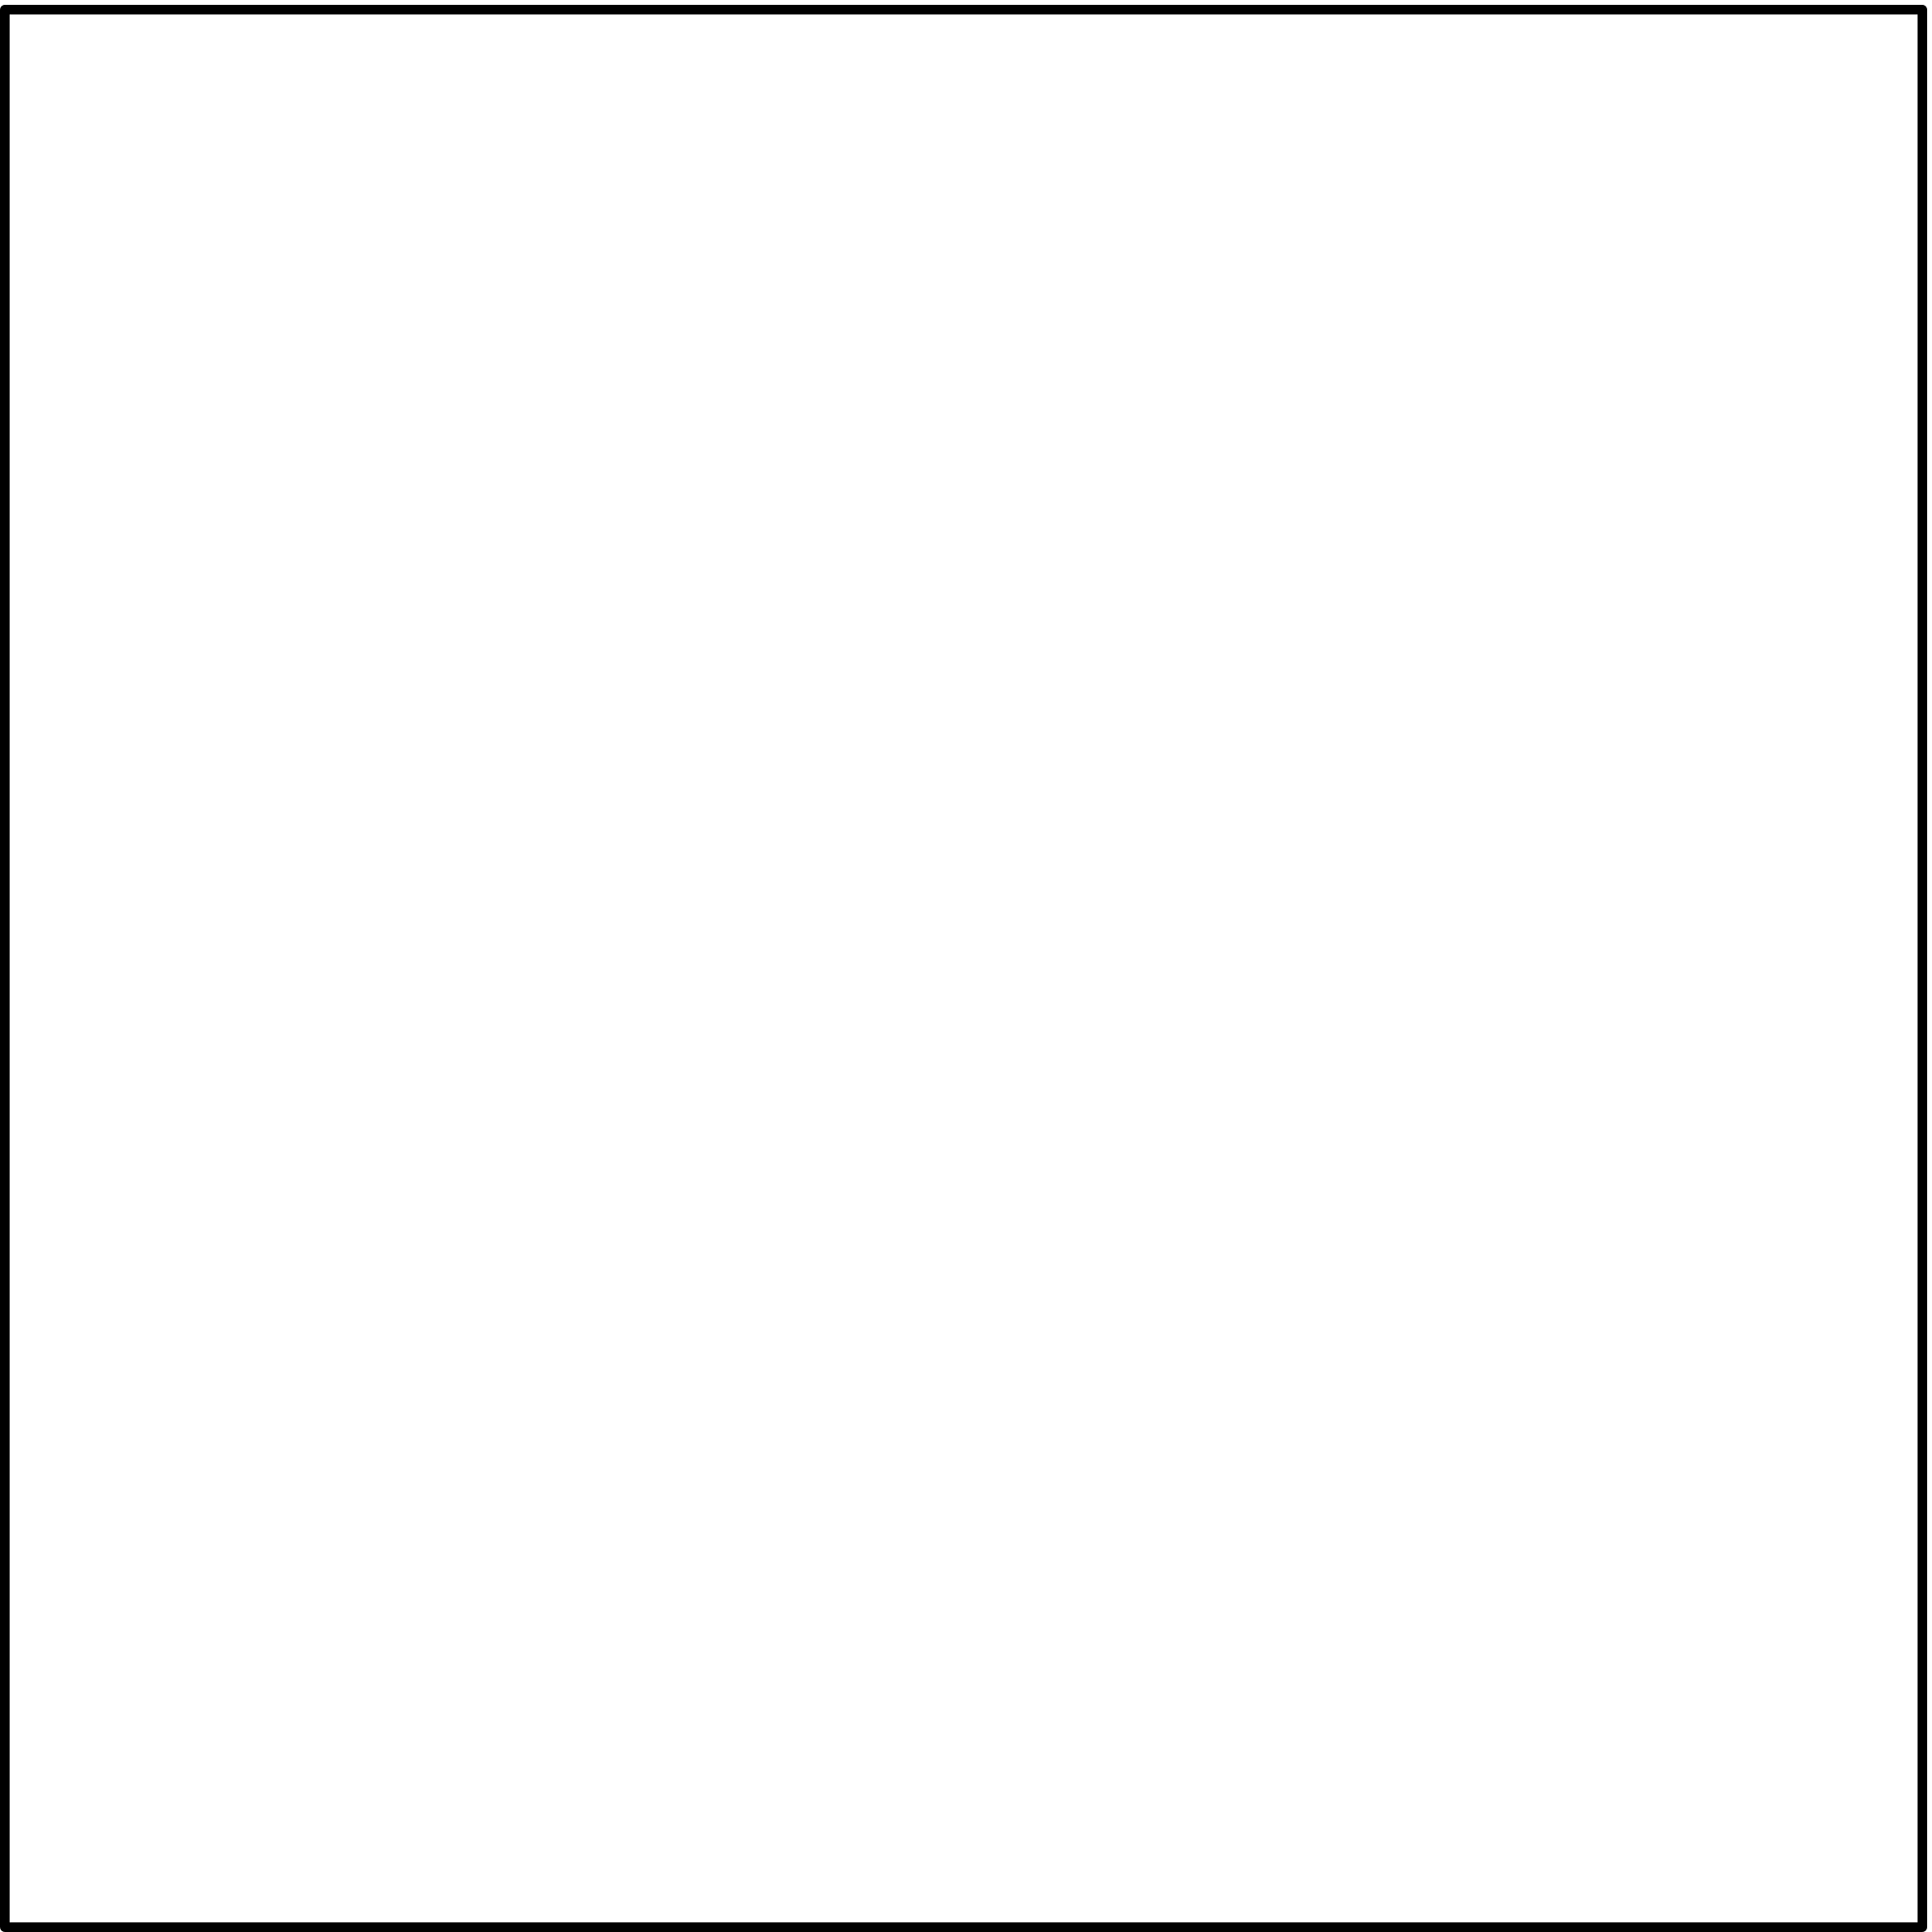 Black square png. Images of outline spacehero